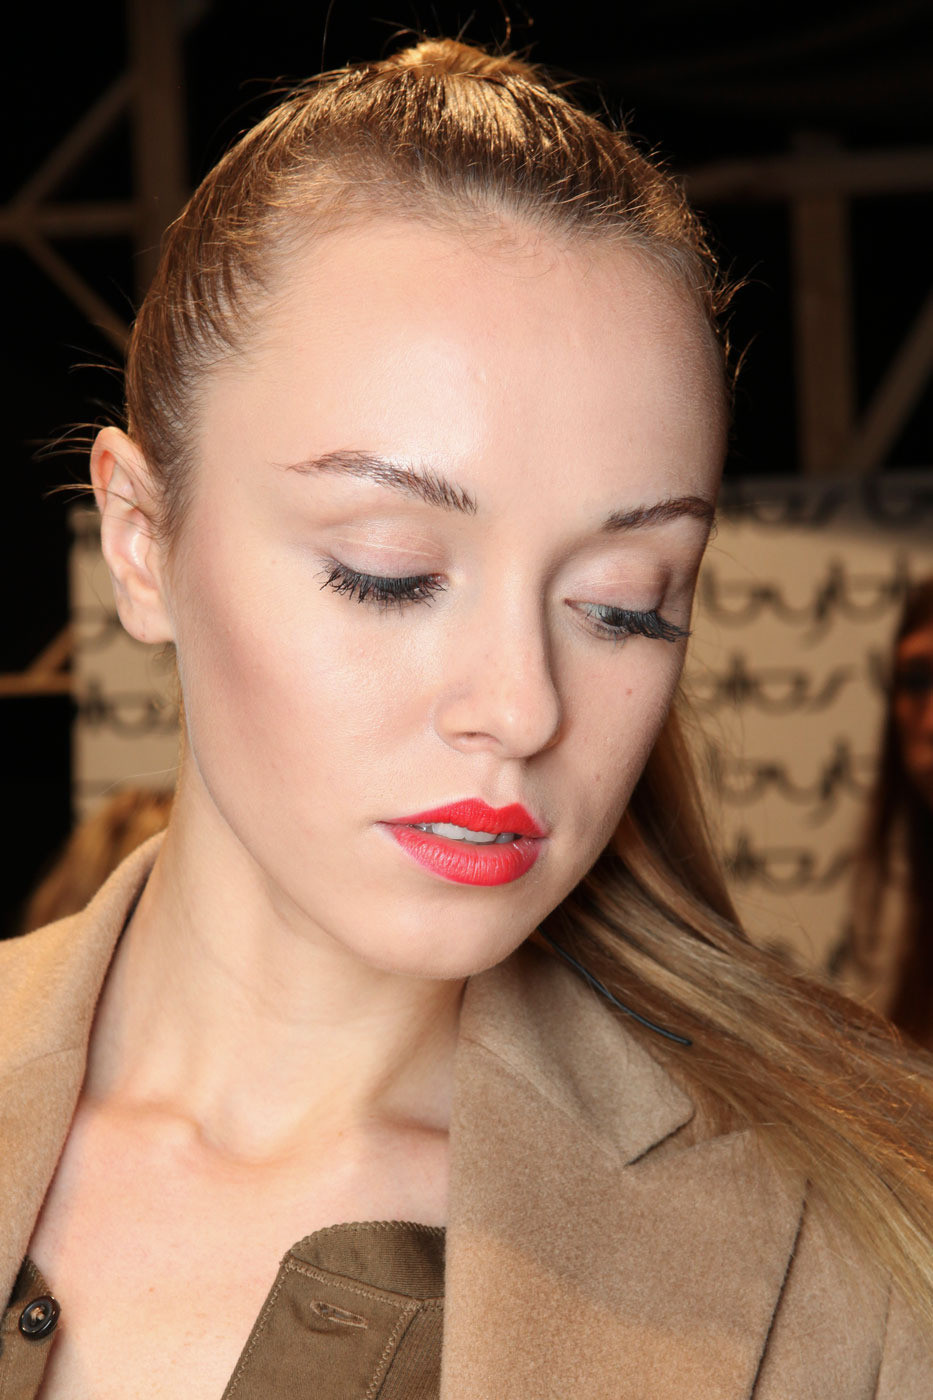 ksenia sukhinova dating Kseniya sukhinova was crowned the new miss world 2008 at the miss world  pageant in johannesburg televised live to over two billion people across the.